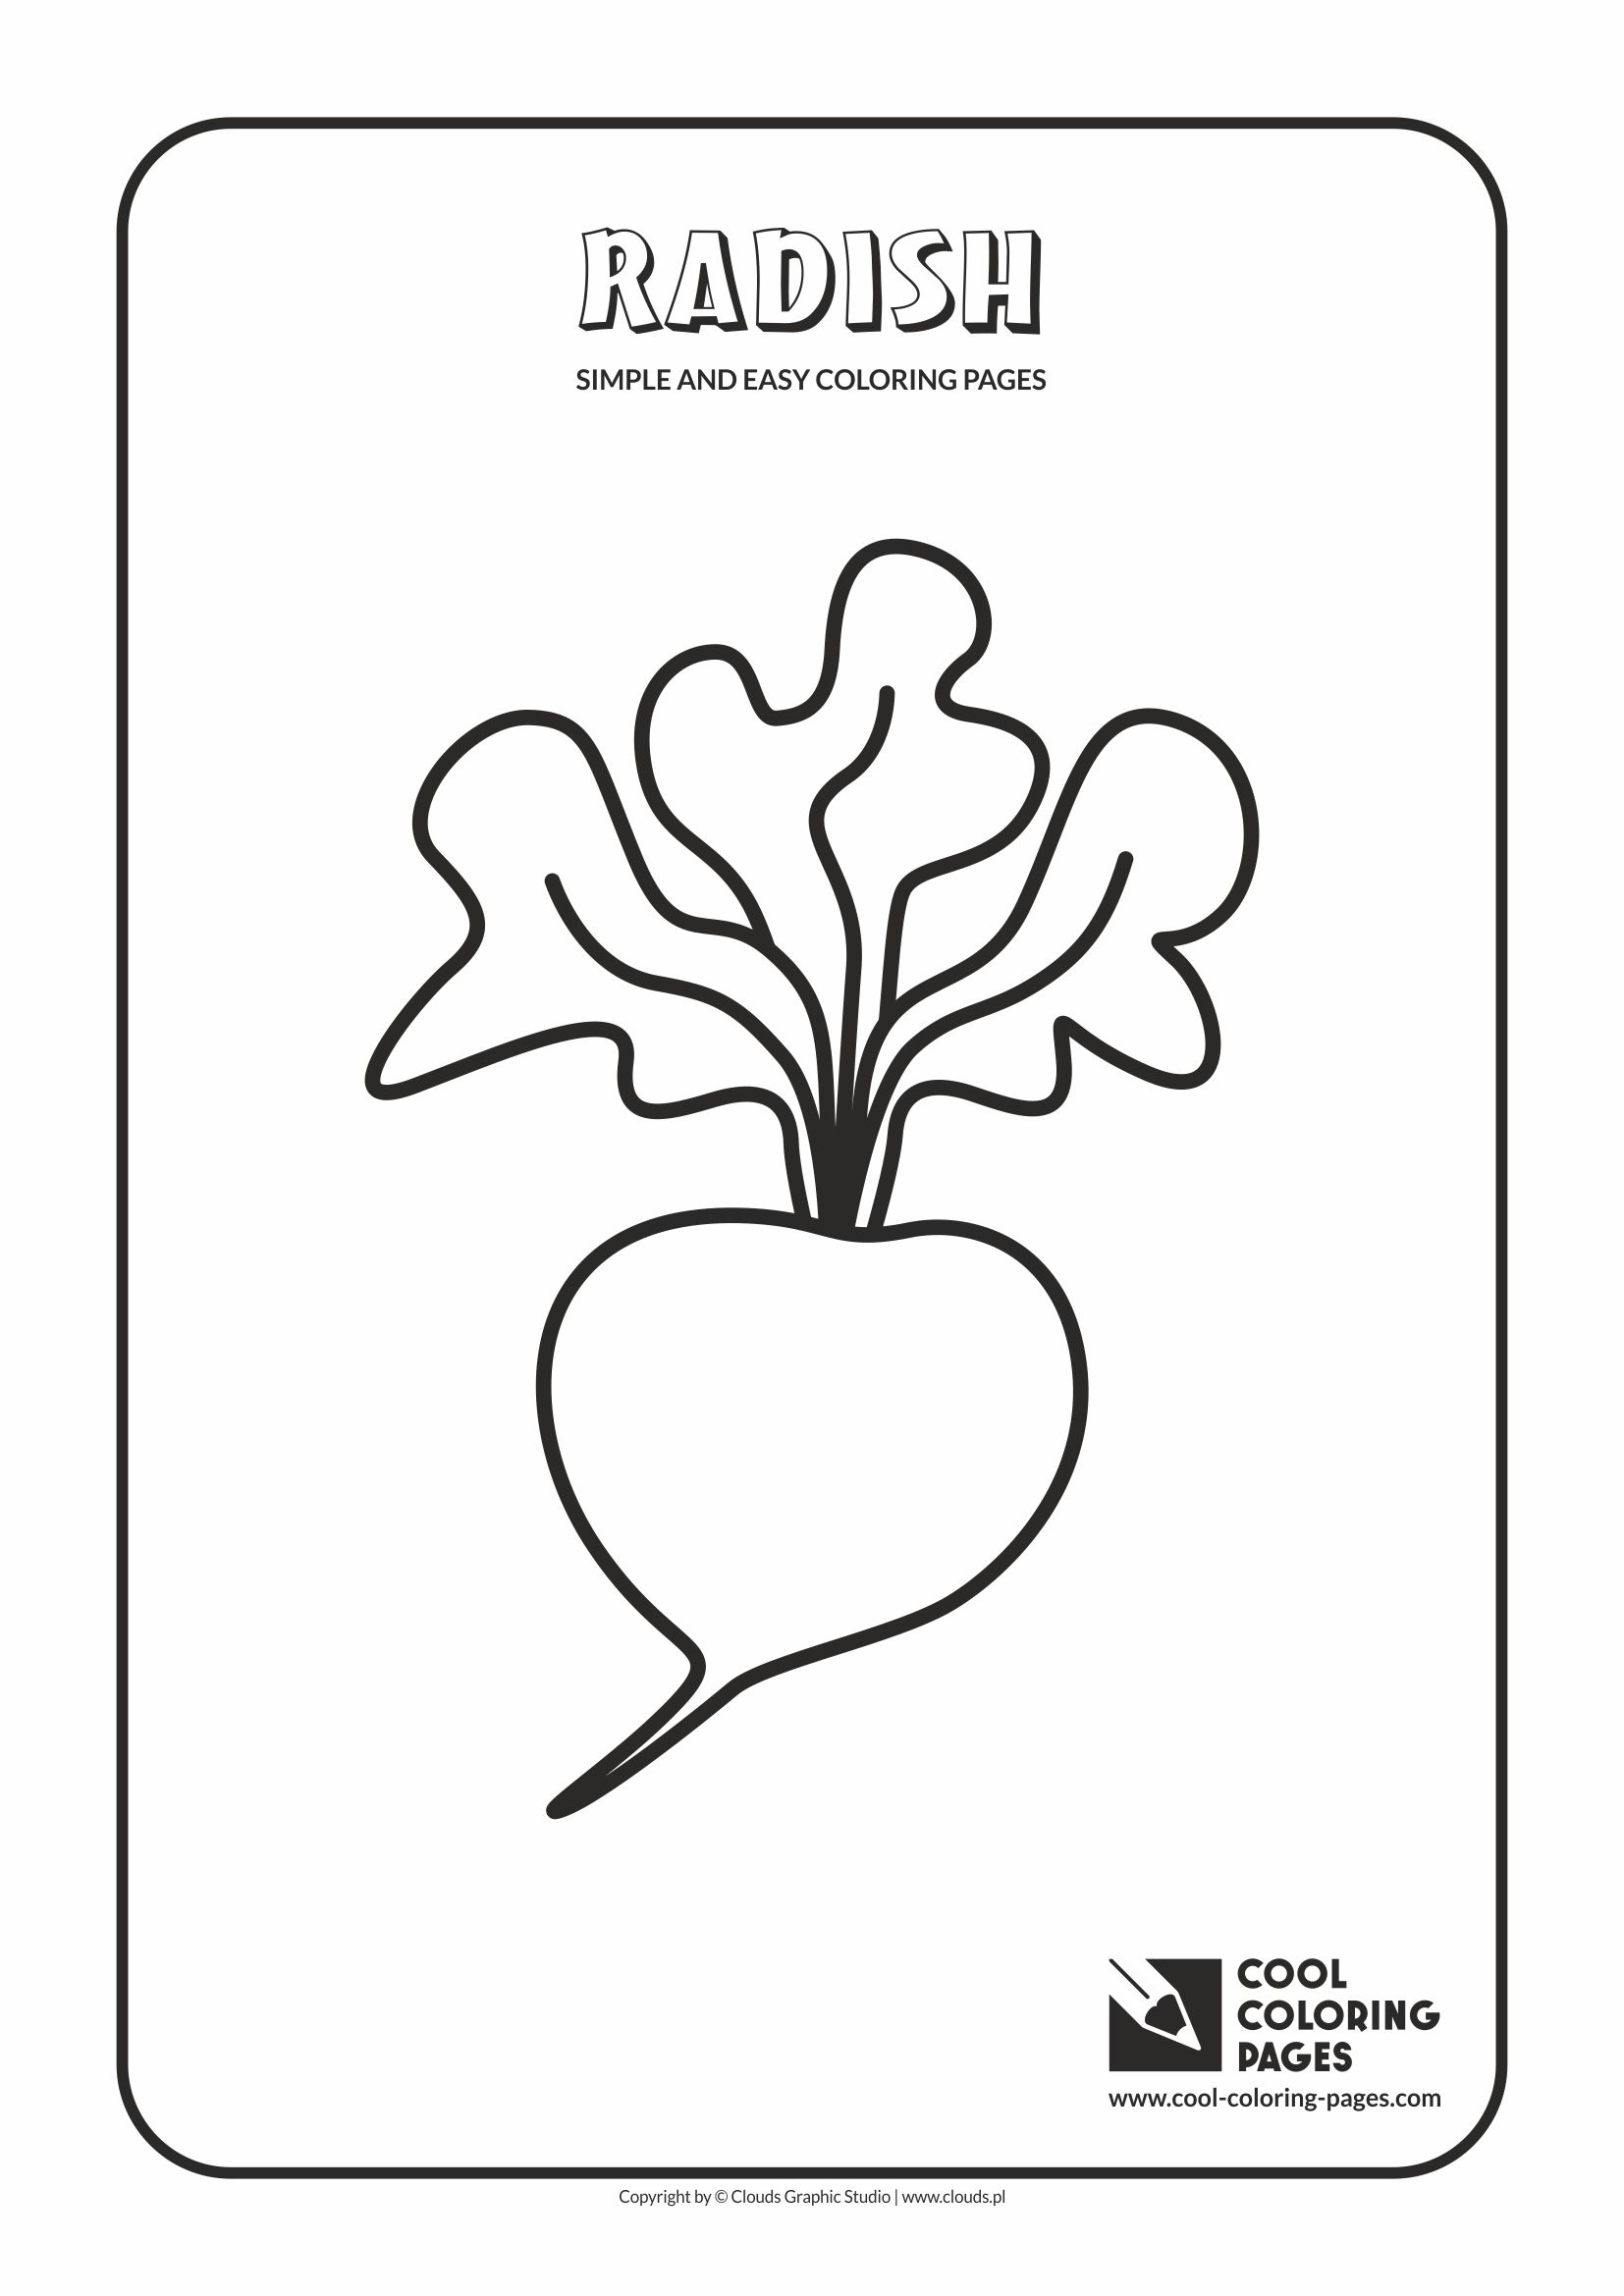 Simple and easy coloring pages for toddlers - Radish